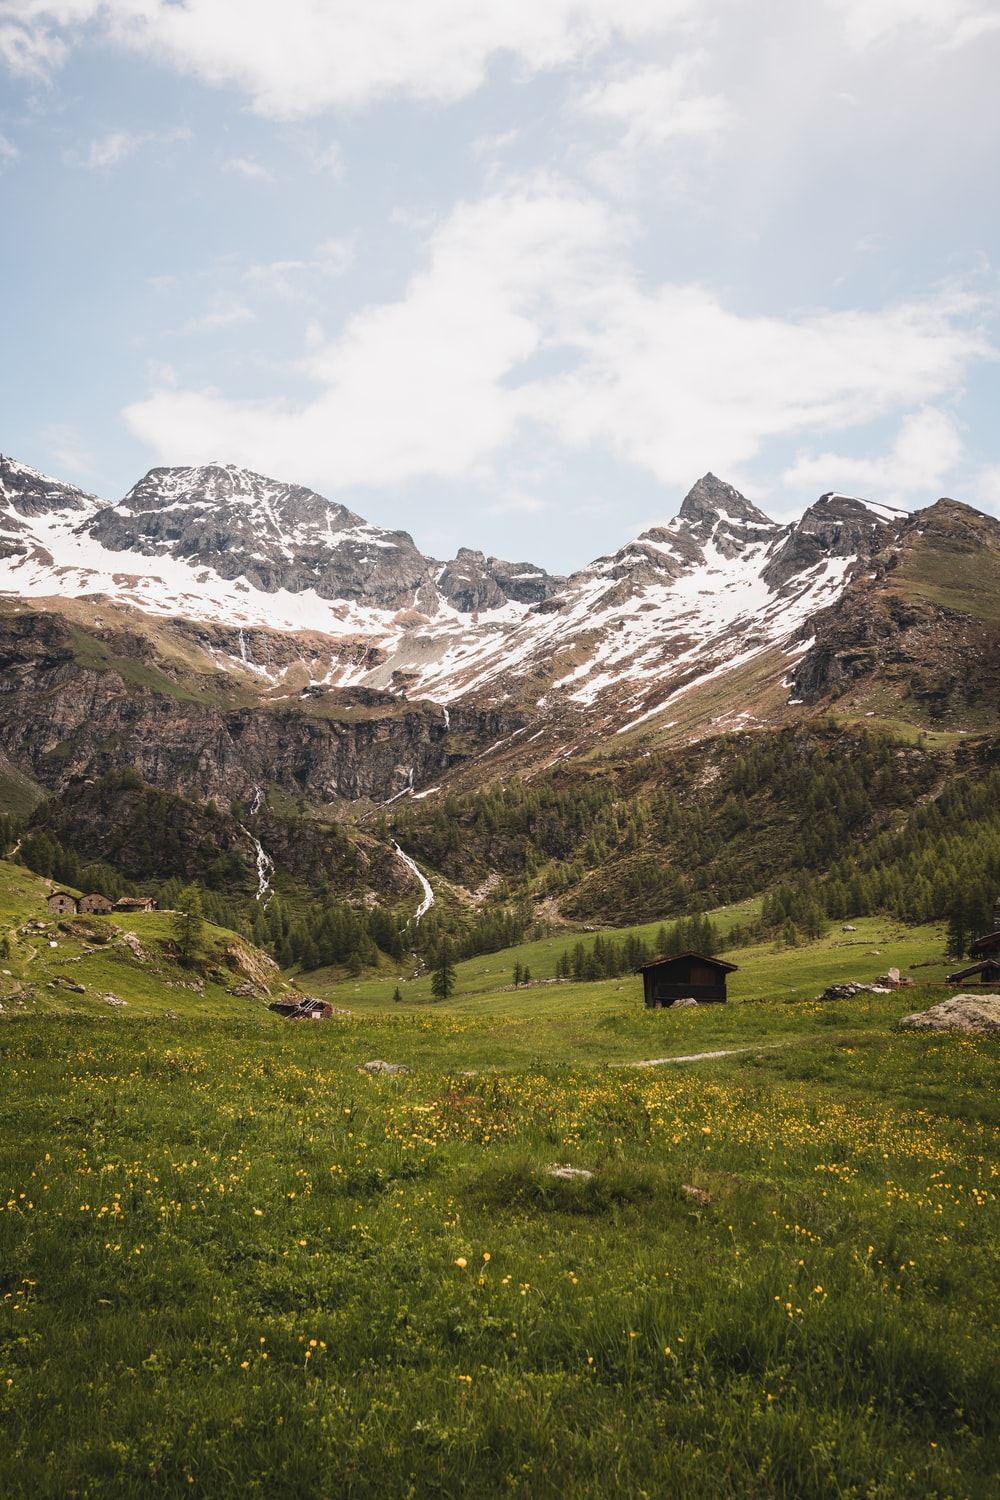 black cow on green grass field near snow covered mountain during daytime